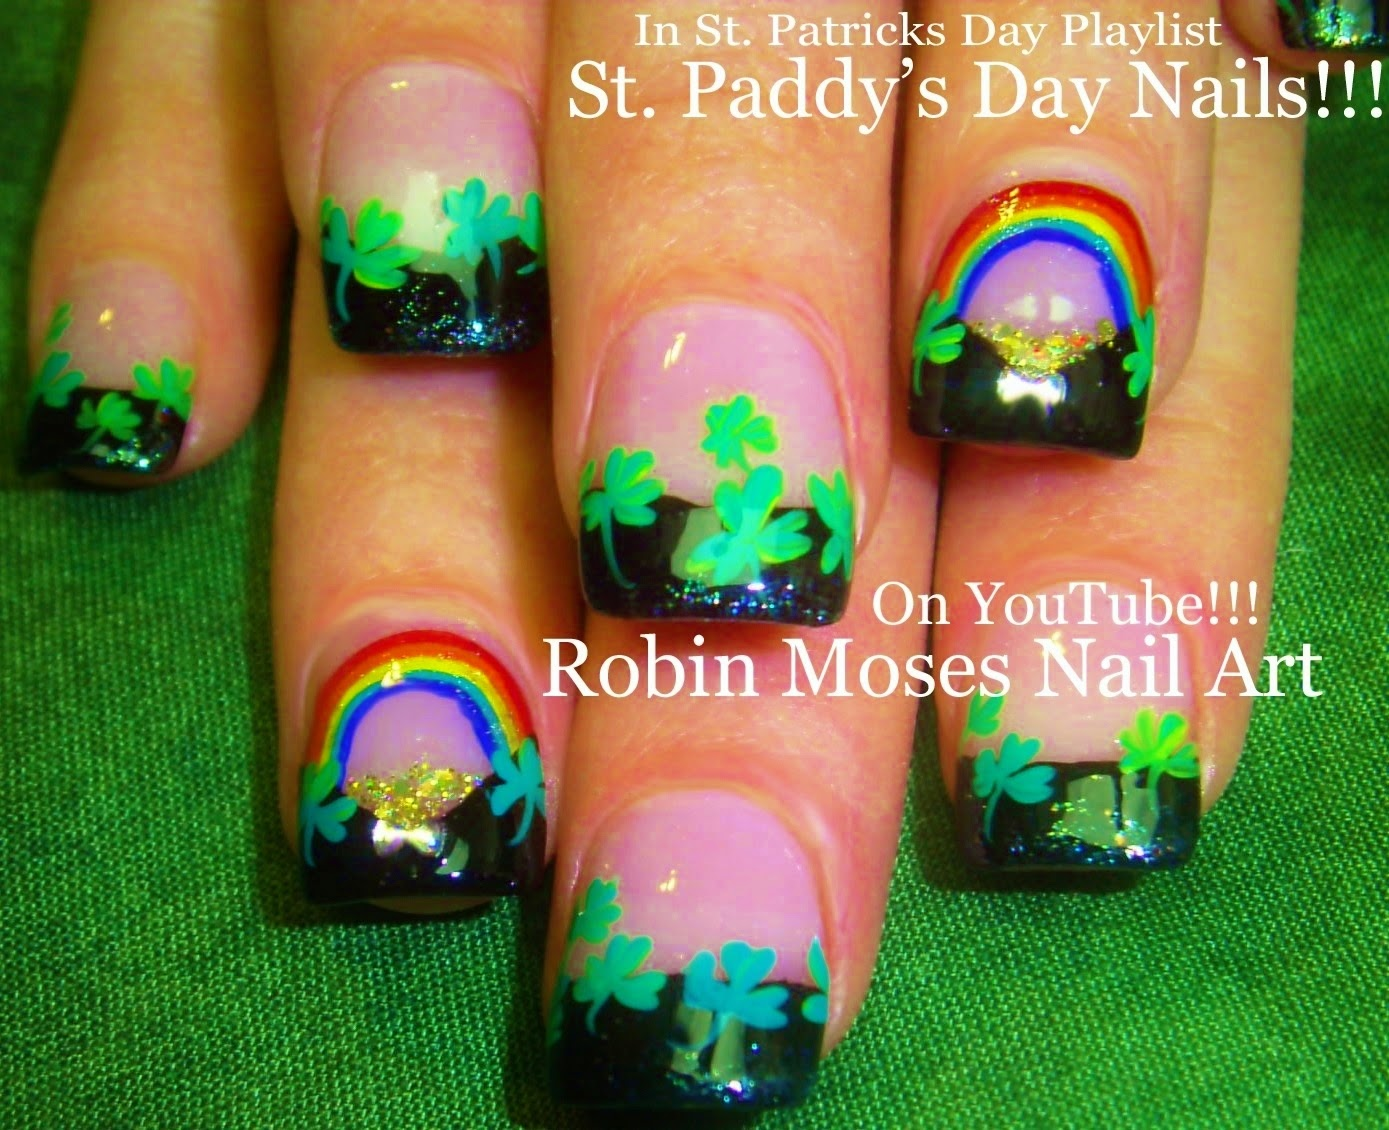 Robin moses nail art trendy st patricks day nails nail art trendy st patricks day nails nail art shamrock nails st paddys day 2015 st patricks day nail art design tutorial by robin moses prinsesfo Gallery